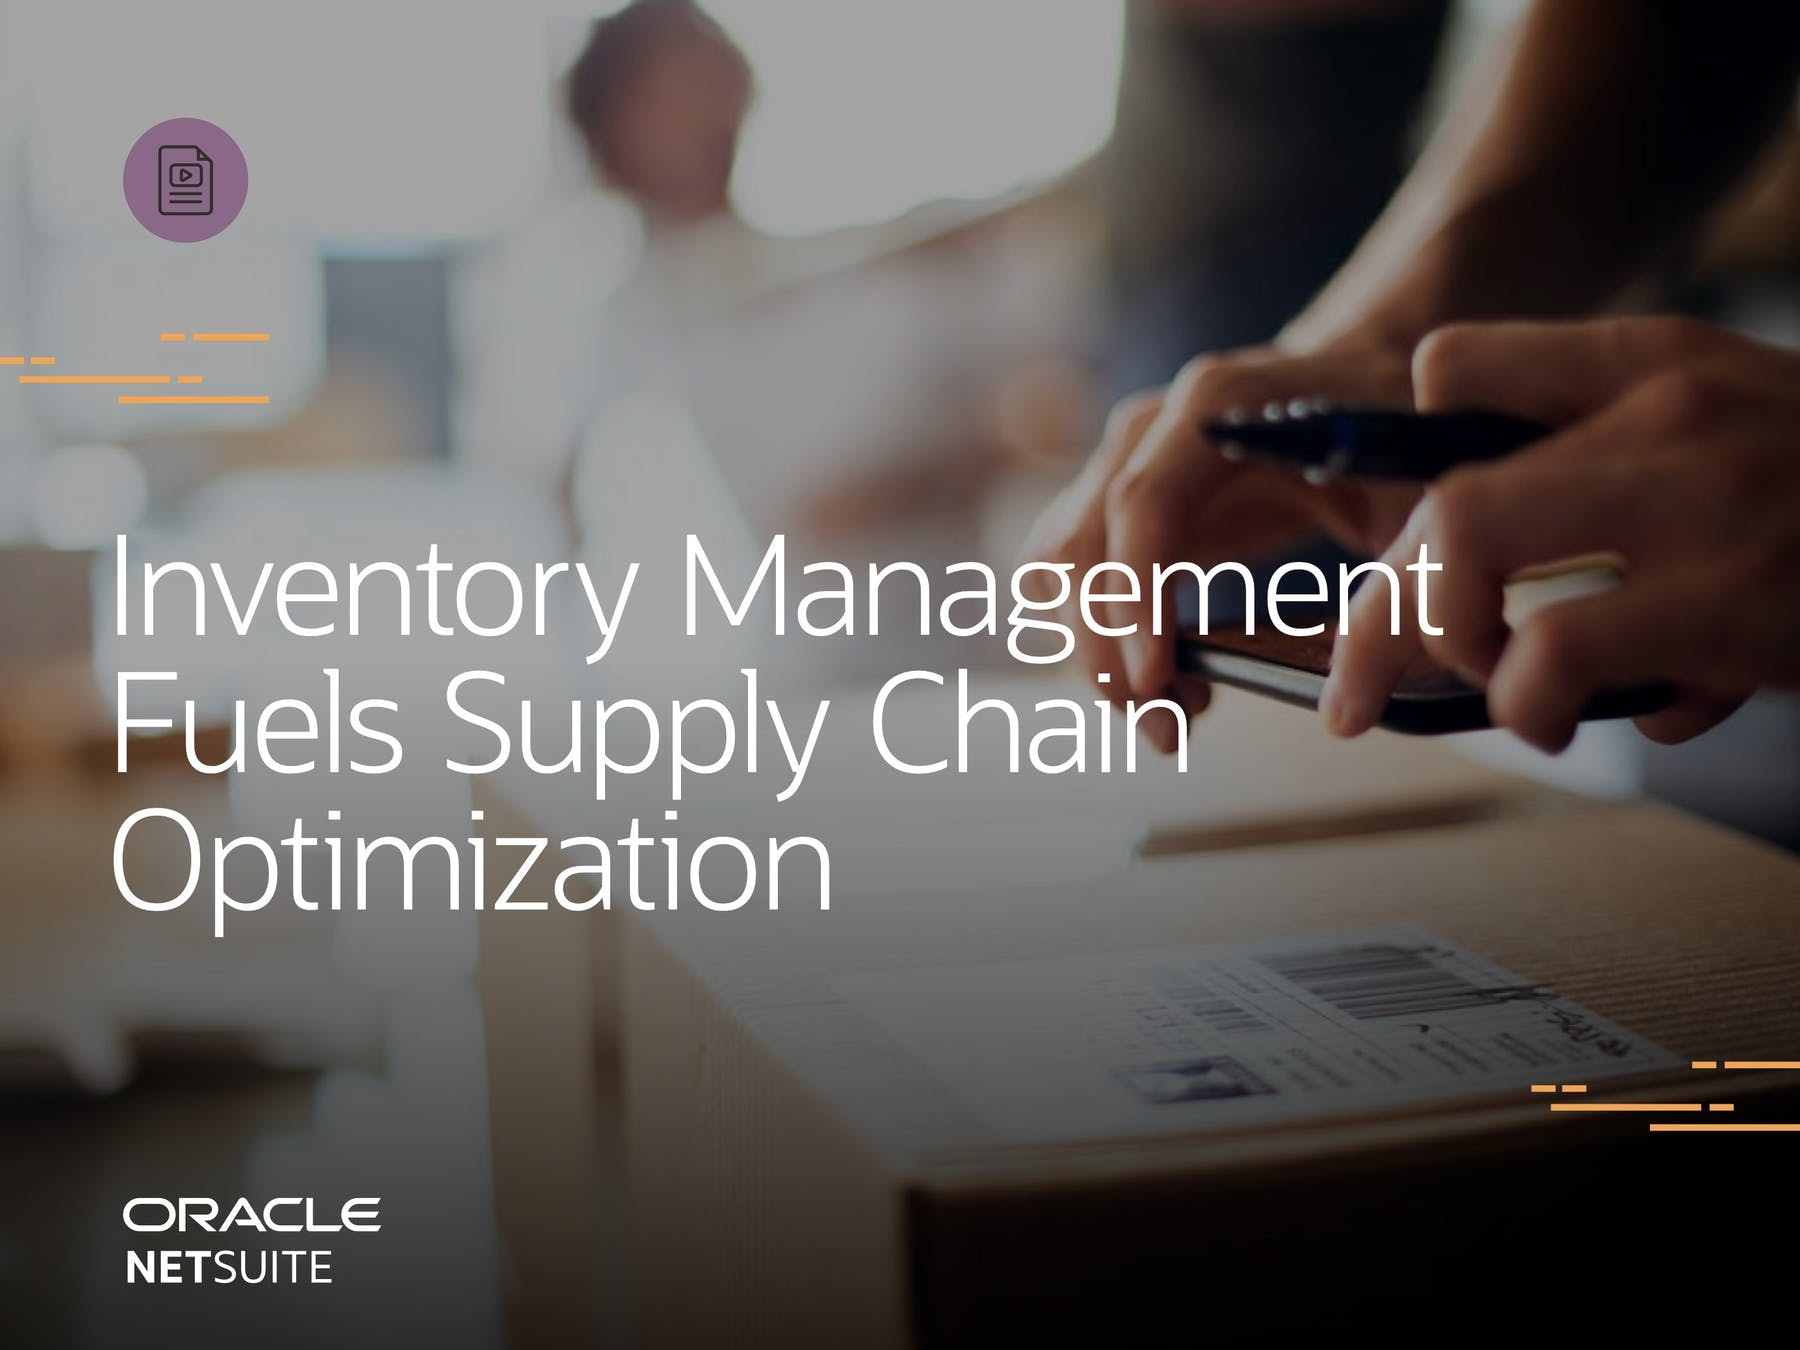 NetSuite ERP White Paper - Inventory Management Fuels Supply Chain Optimization